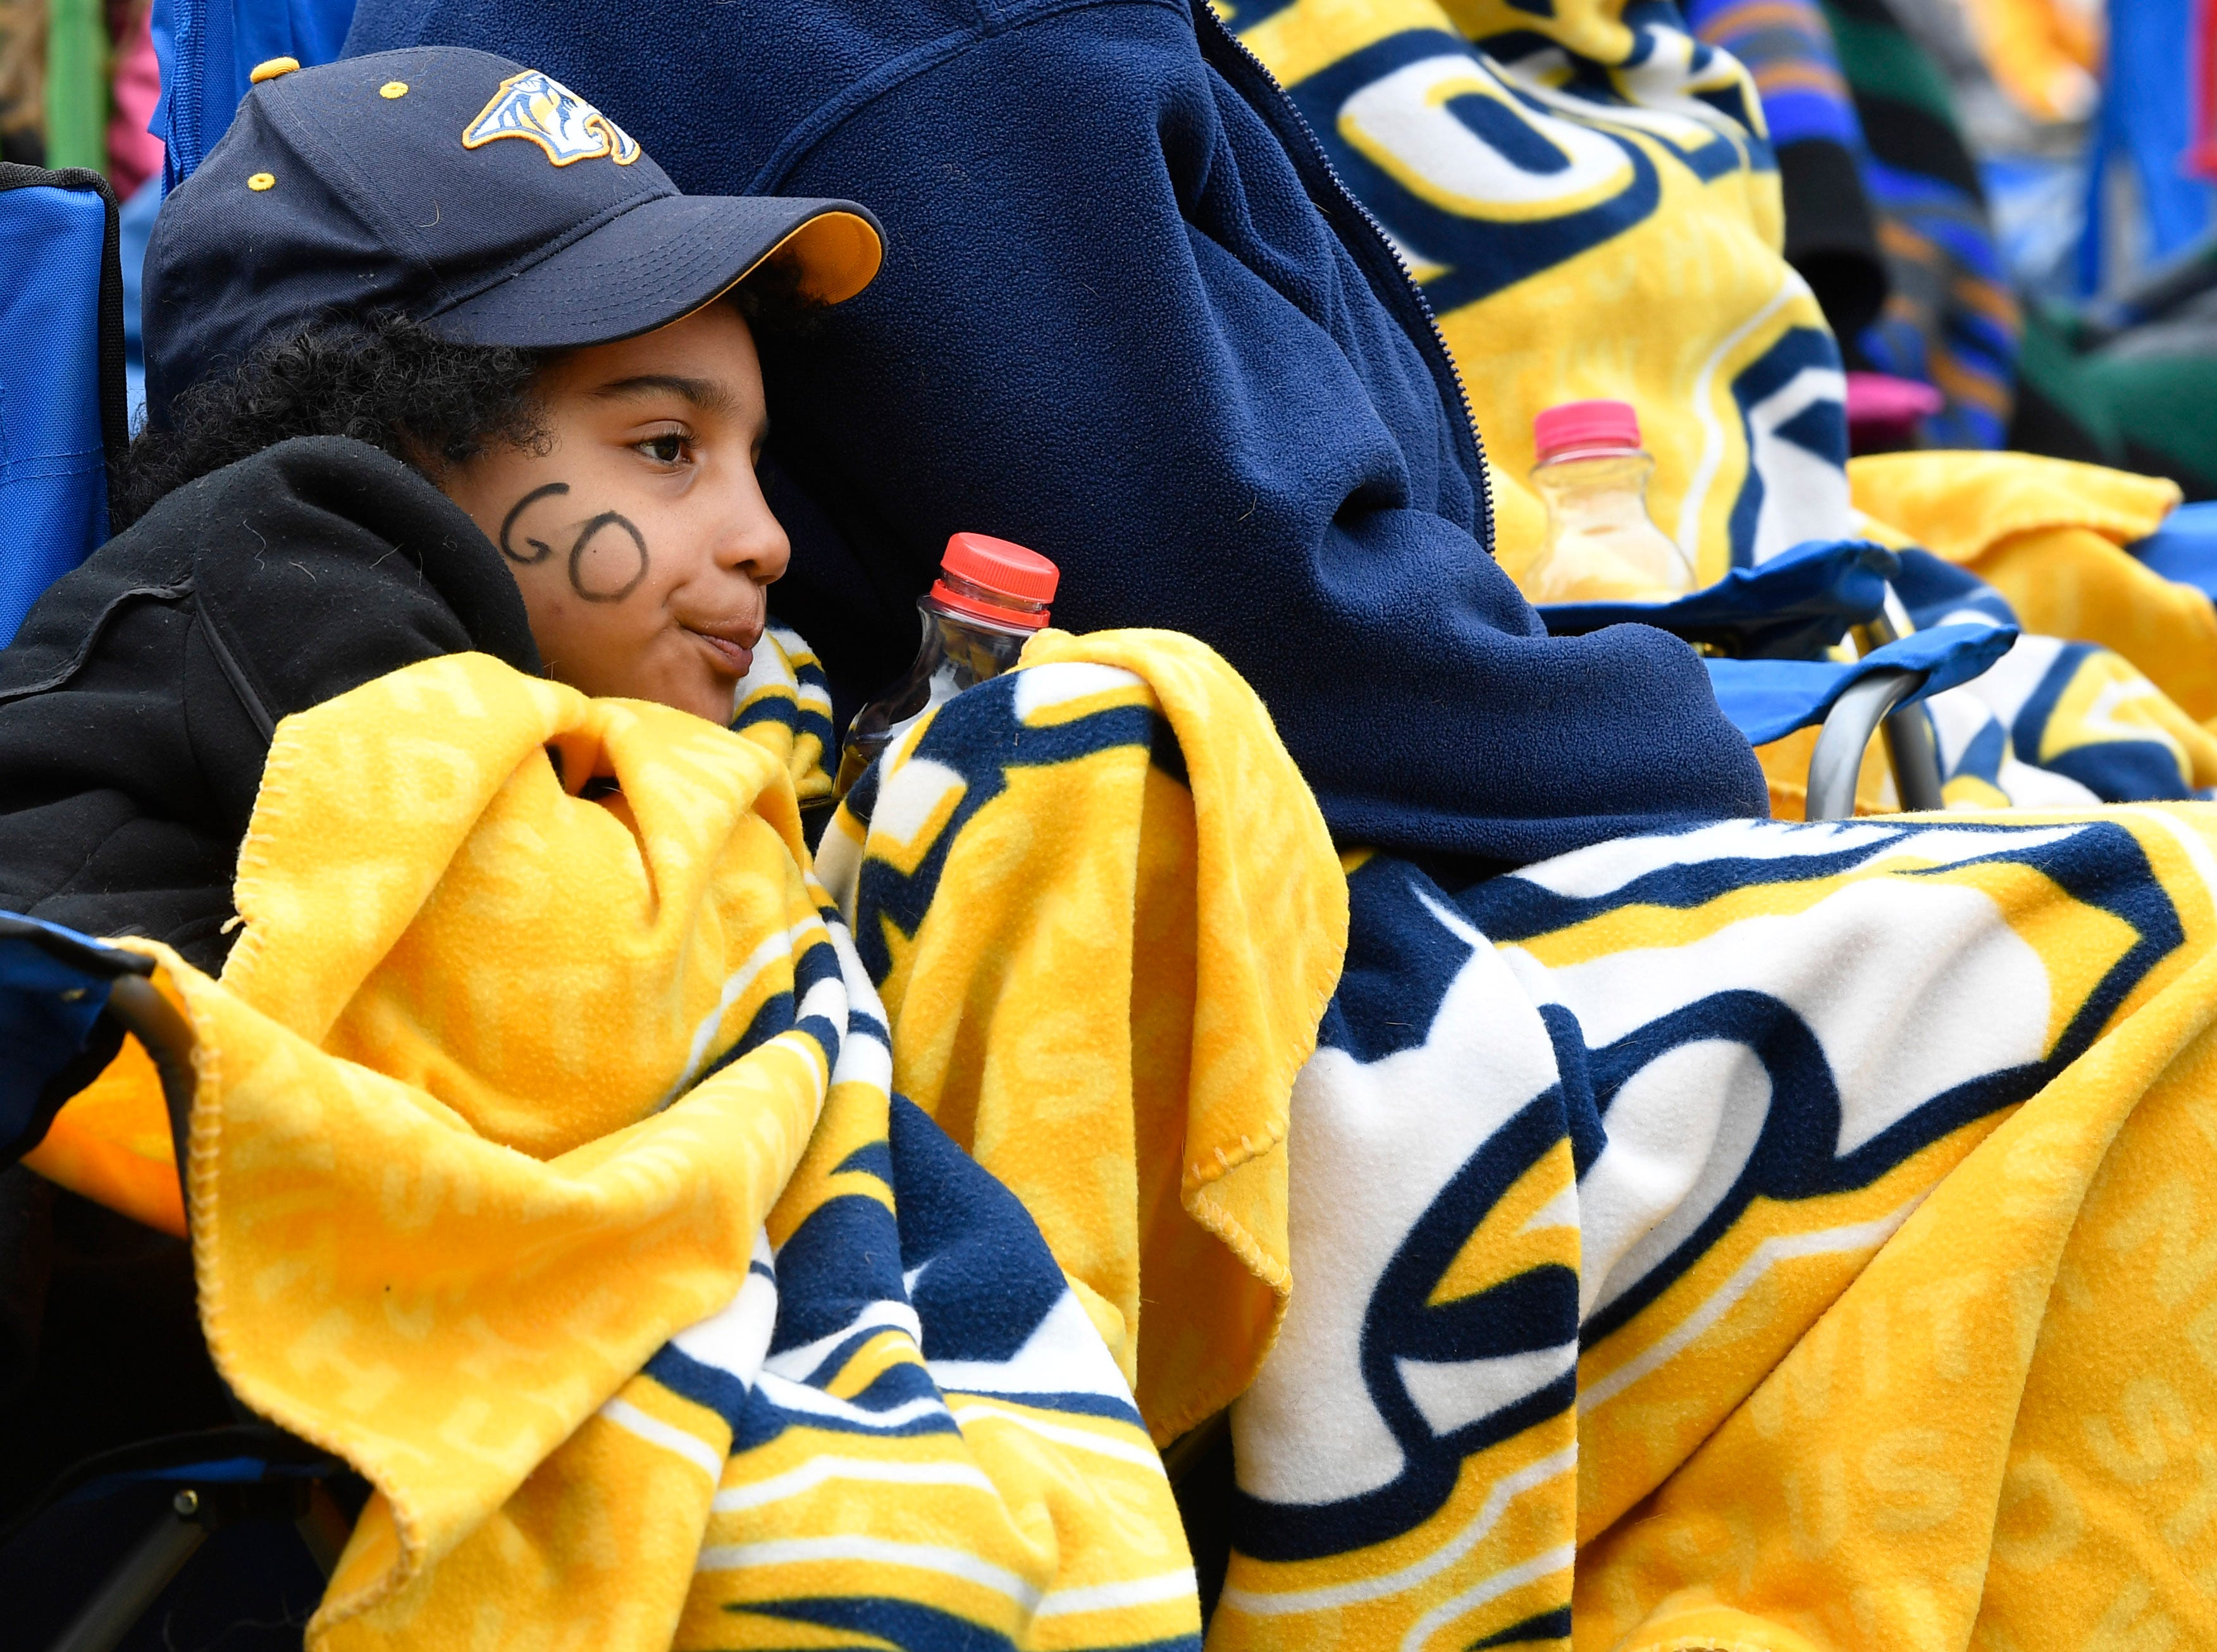 Robyn Patterson tries to stay warm in the chilly weather during the watch party of the divisional semifinal game against the Stars at Bridgestone ArenaSaturday, April 20, 2019, in Nashville, Tenn.